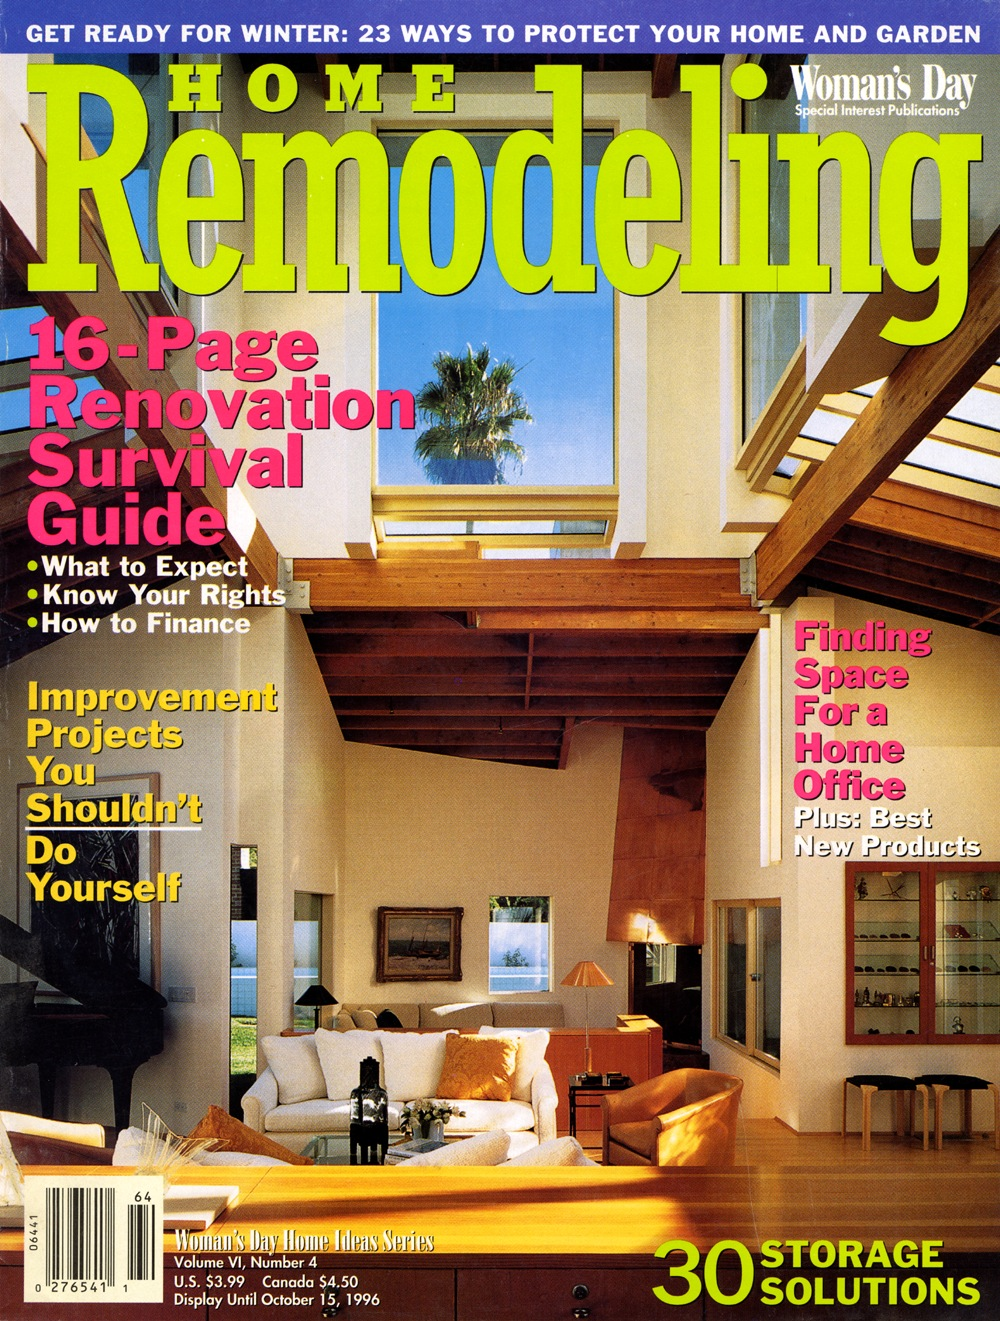 Woman's Day - Home Remodeling Magazine - Cover.jpg